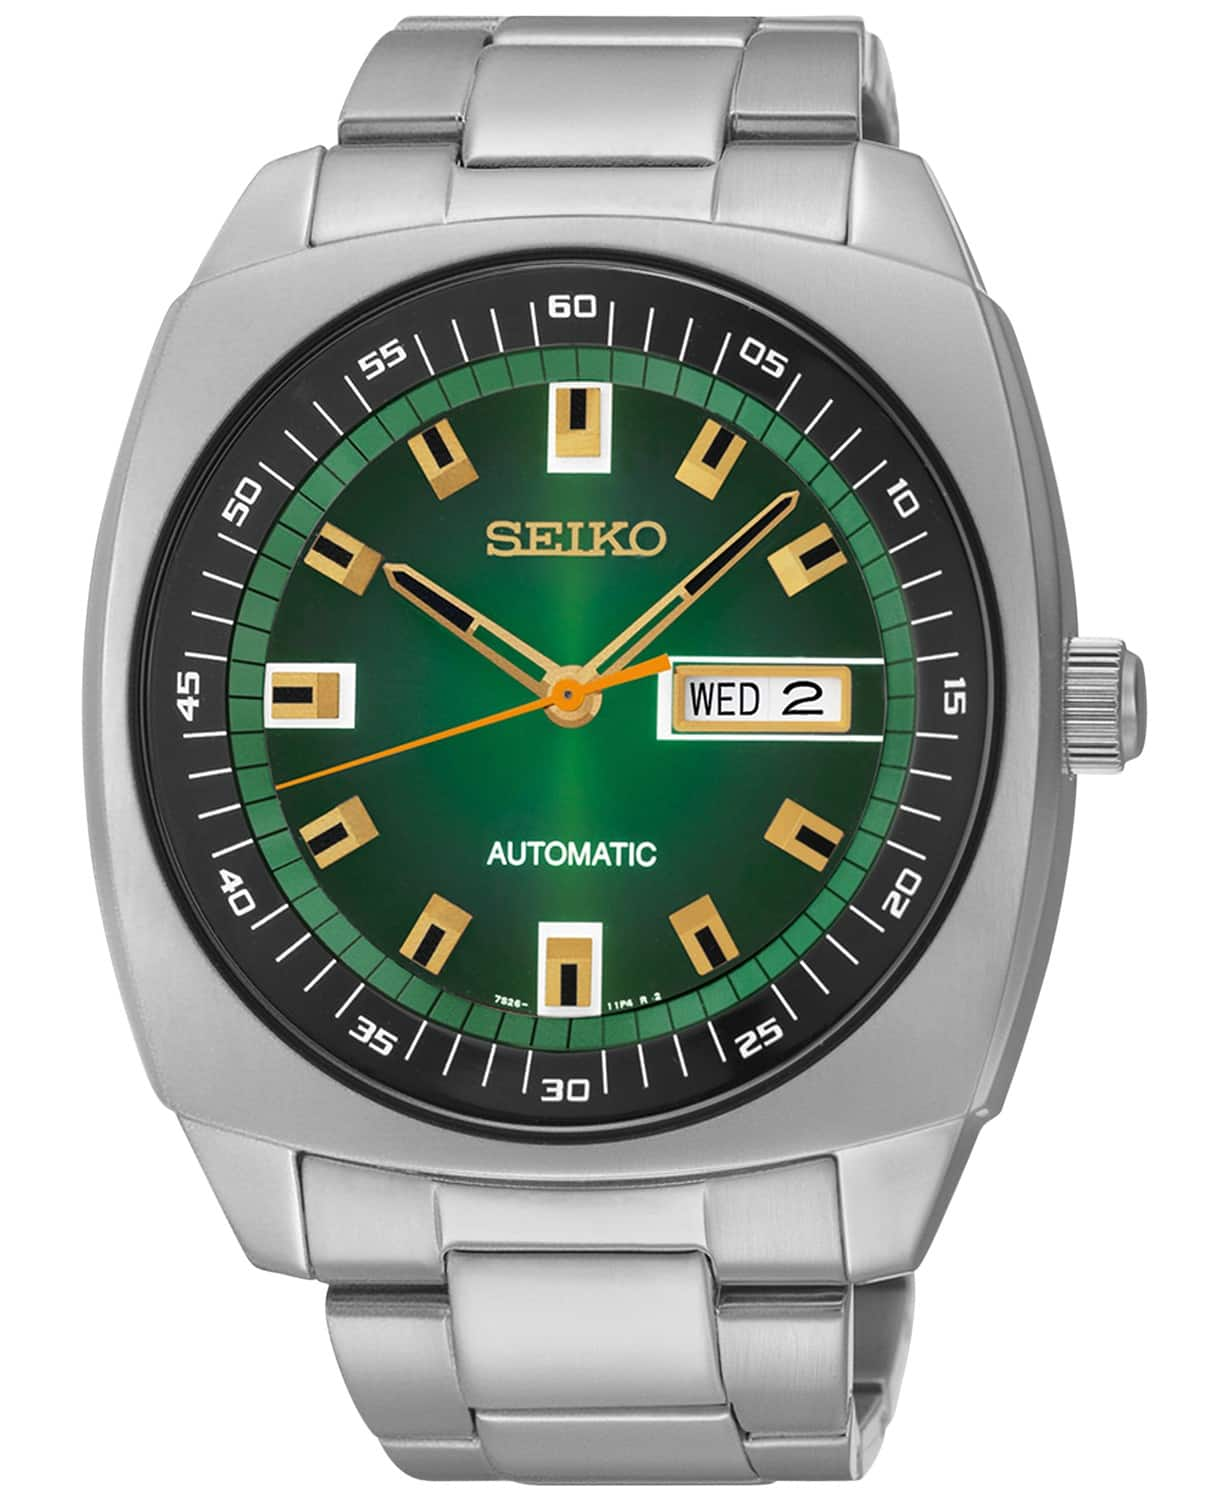 Seiko Recraft Mens Stainless Steel Automatic Watch $106.25